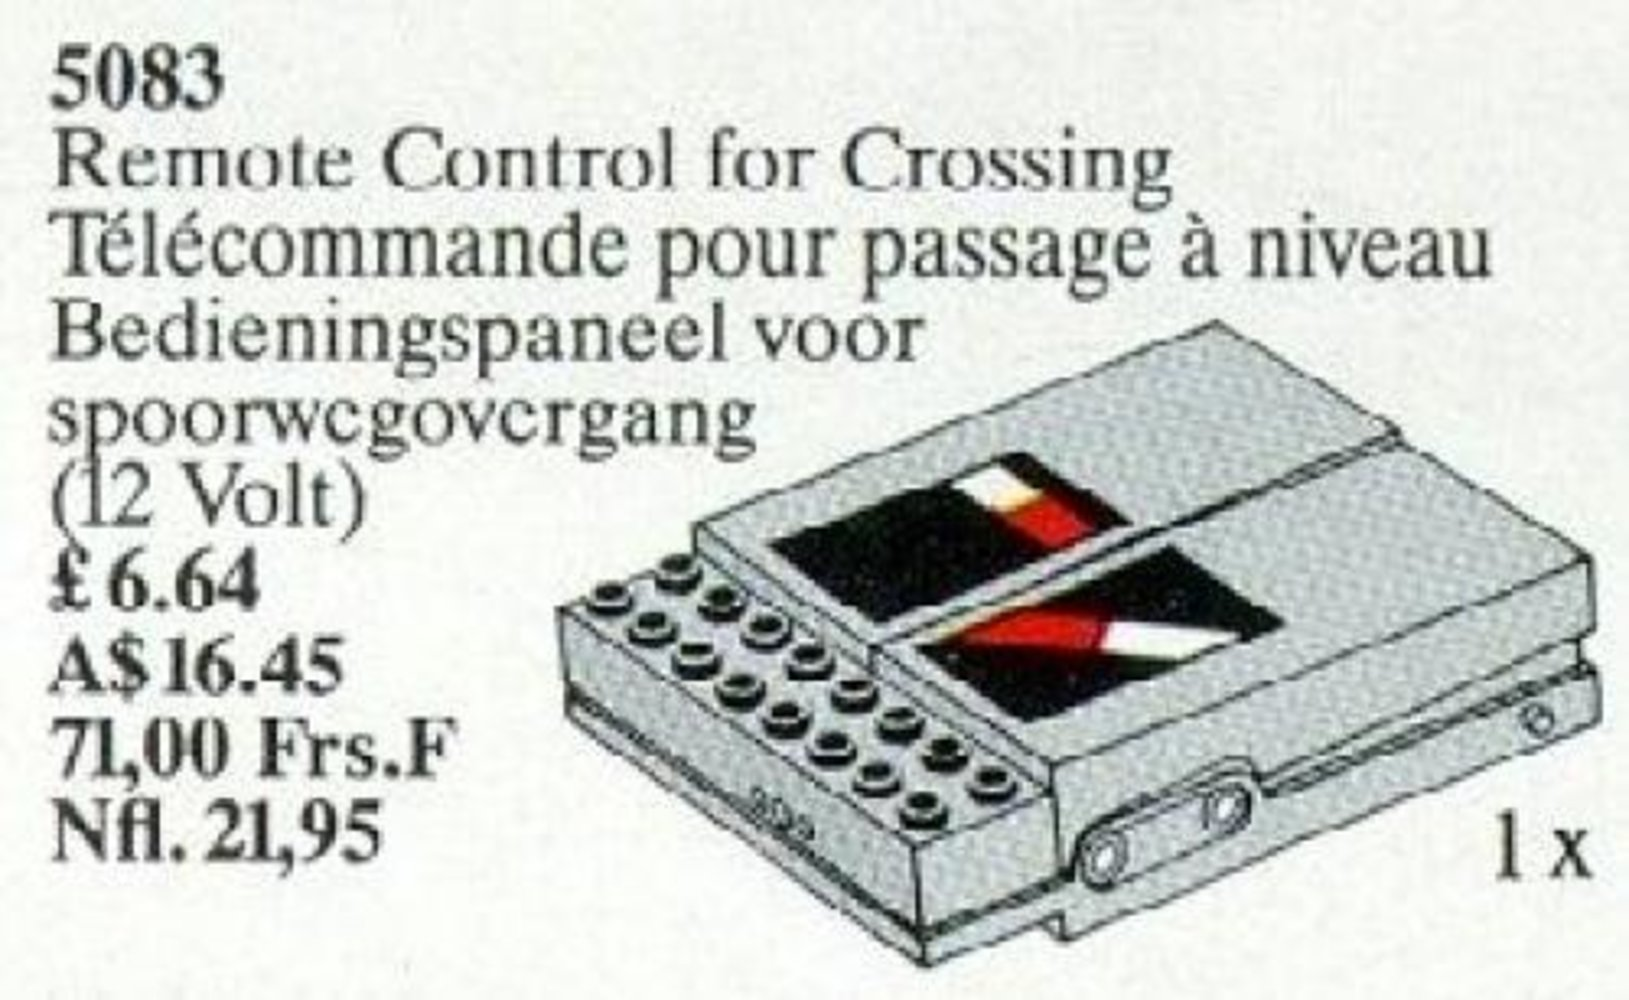 Remote Control for Crossing